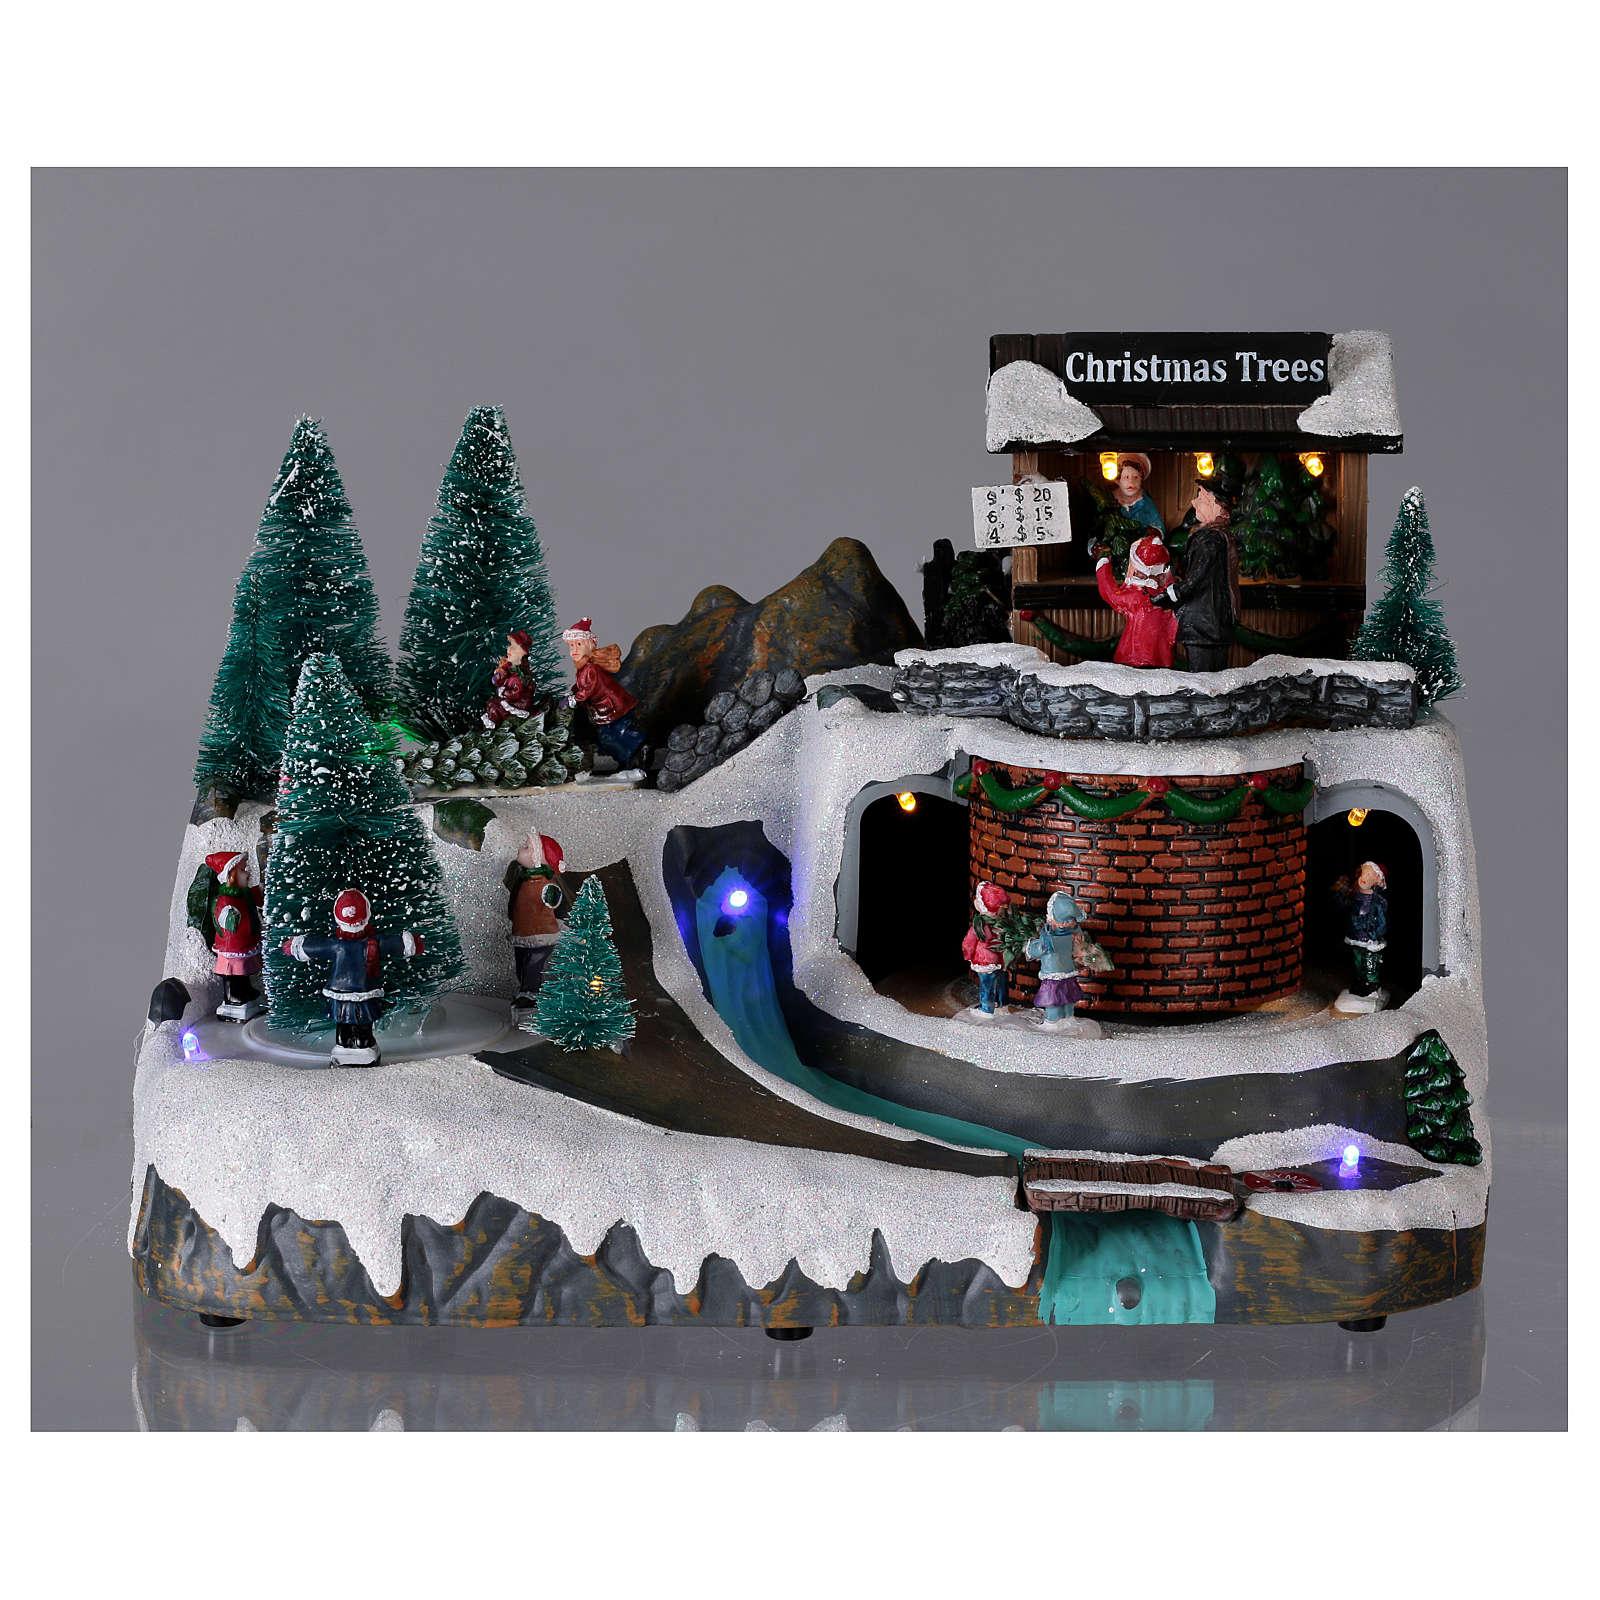 Illuminated Christmas Tree Shop with music and movement 20x25x20 cm 3